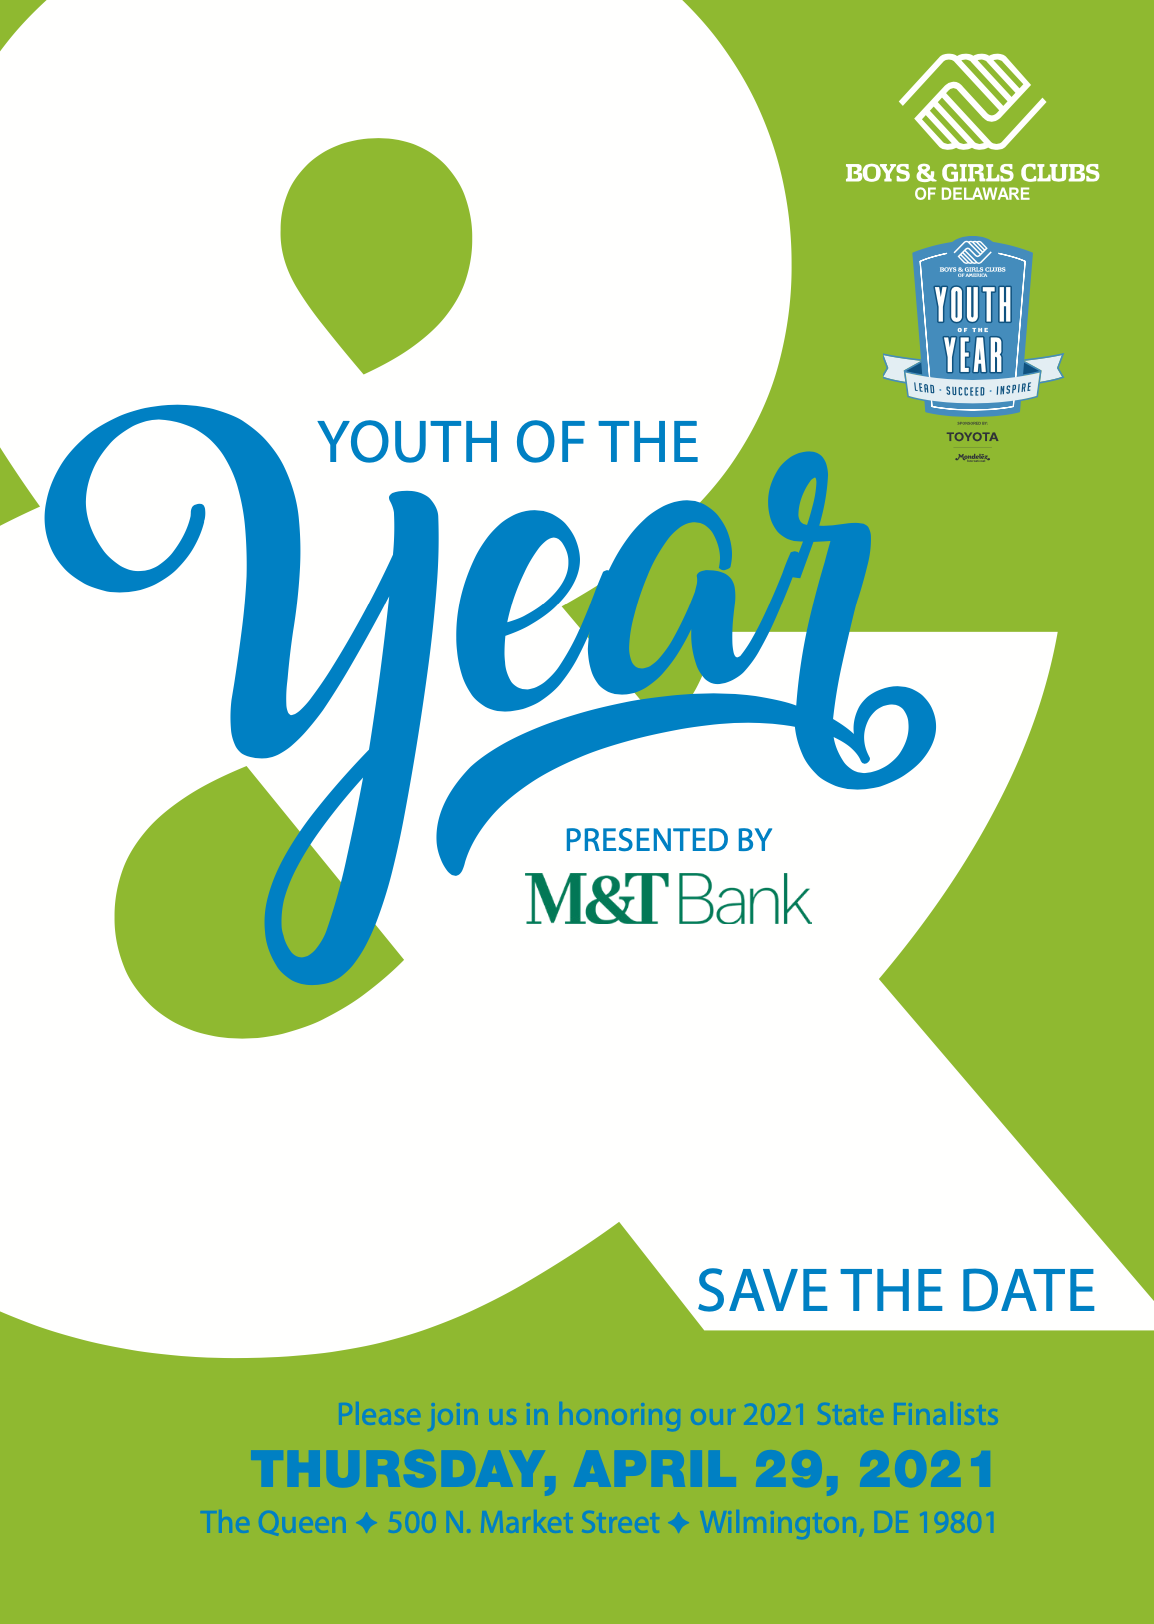 Youth of the year. Presented by m&t bank. Save the date. Please join us in honoring our 2021 State Finalists. THURSDAY, APRIL 29, 2021. The Queen F 500 N. Market Street F Wilmington, DE 19801